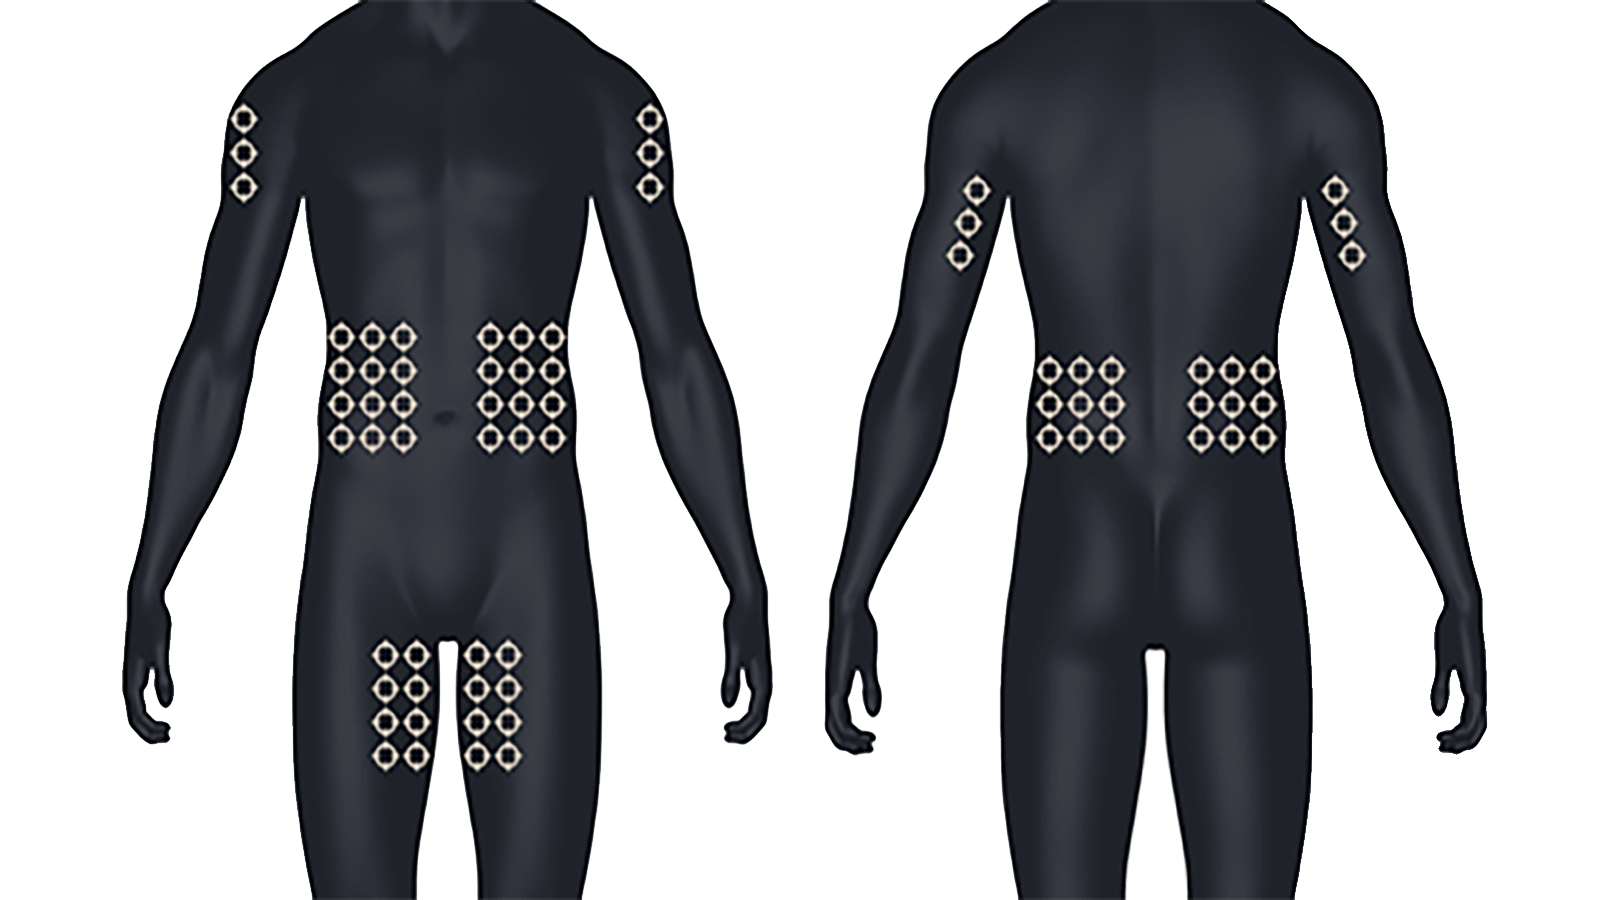 Image of front and back male human anatomy to demonstrate possible administration sites